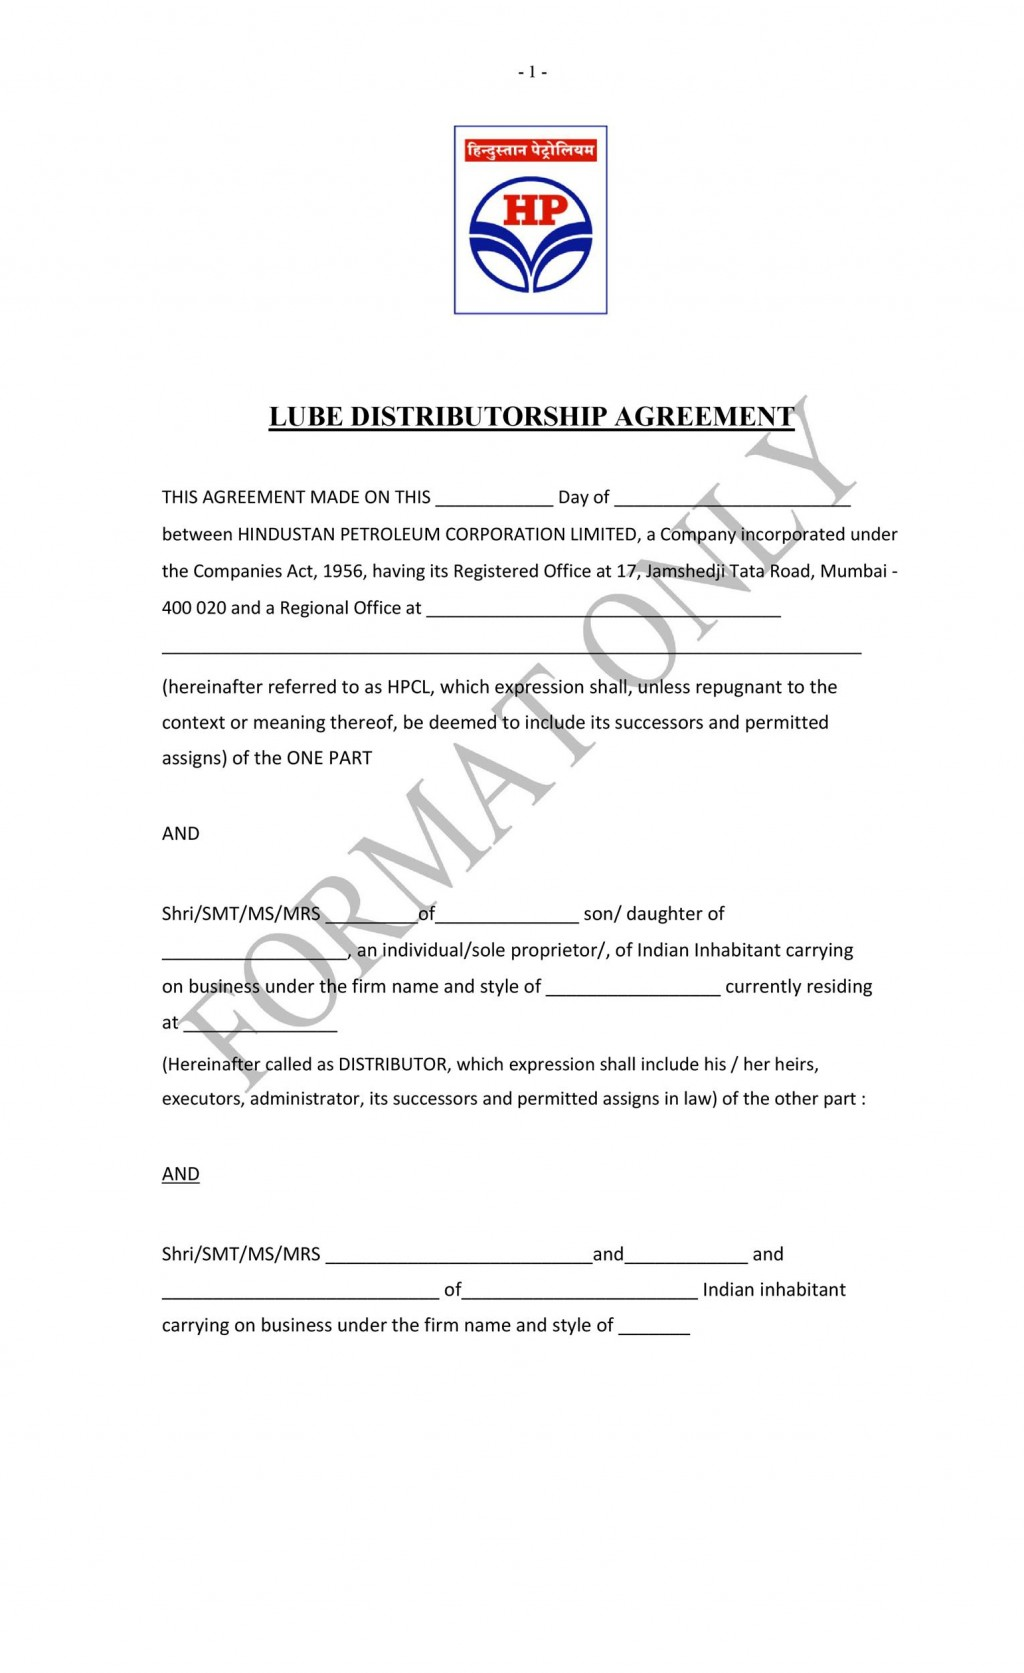 007 Incredible Exclusive Distribution Contract Template High Resolution  Agreement South Africa Non Free UkLarge